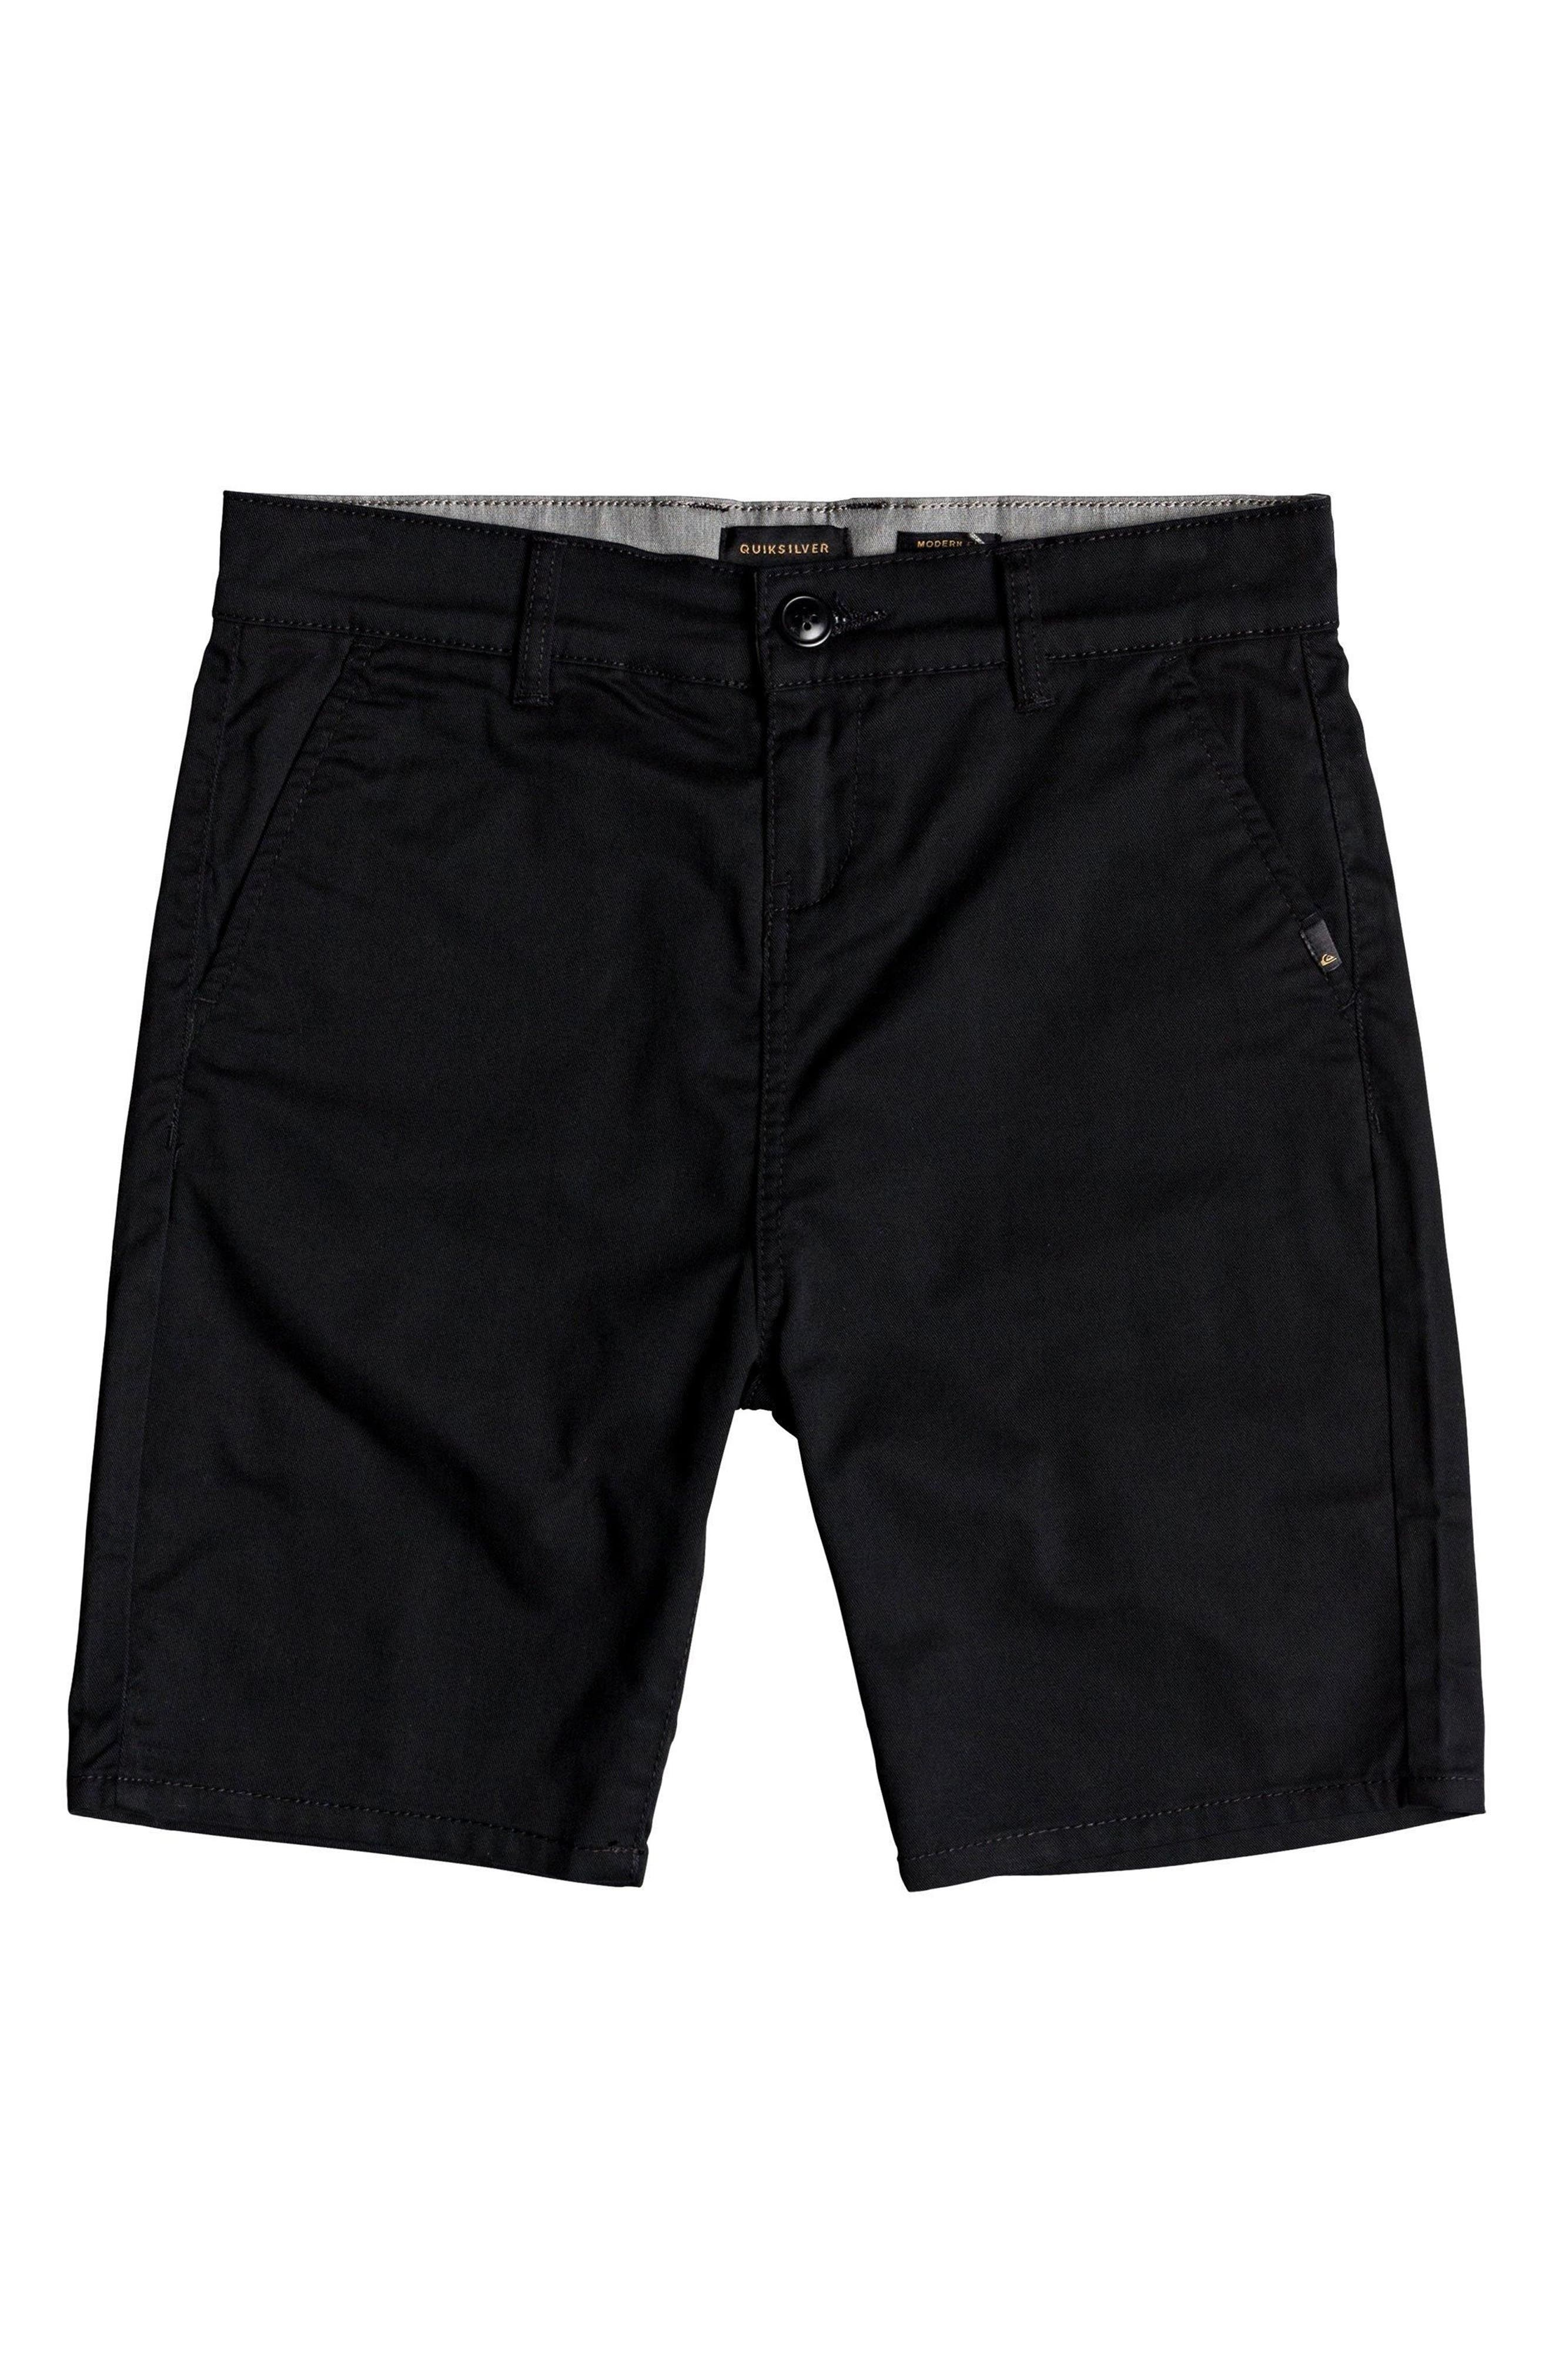 Everyday Union Stretch Shorts,                             Main thumbnail 1, color,                             Black